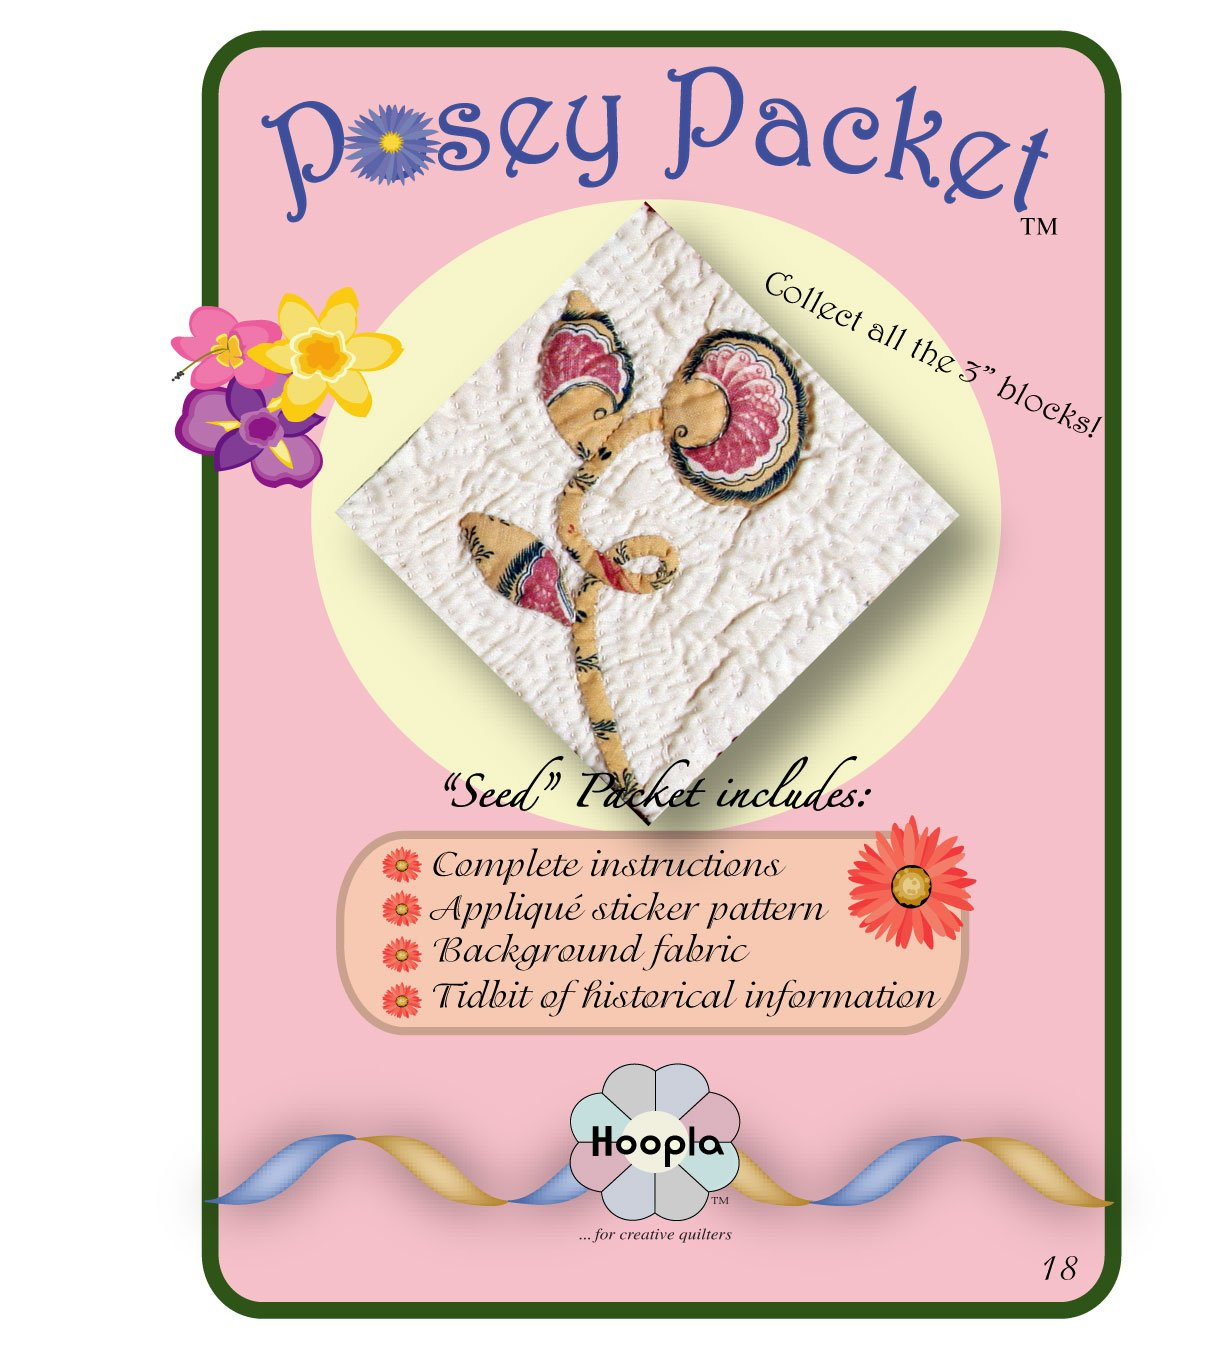 Posey Packet 18